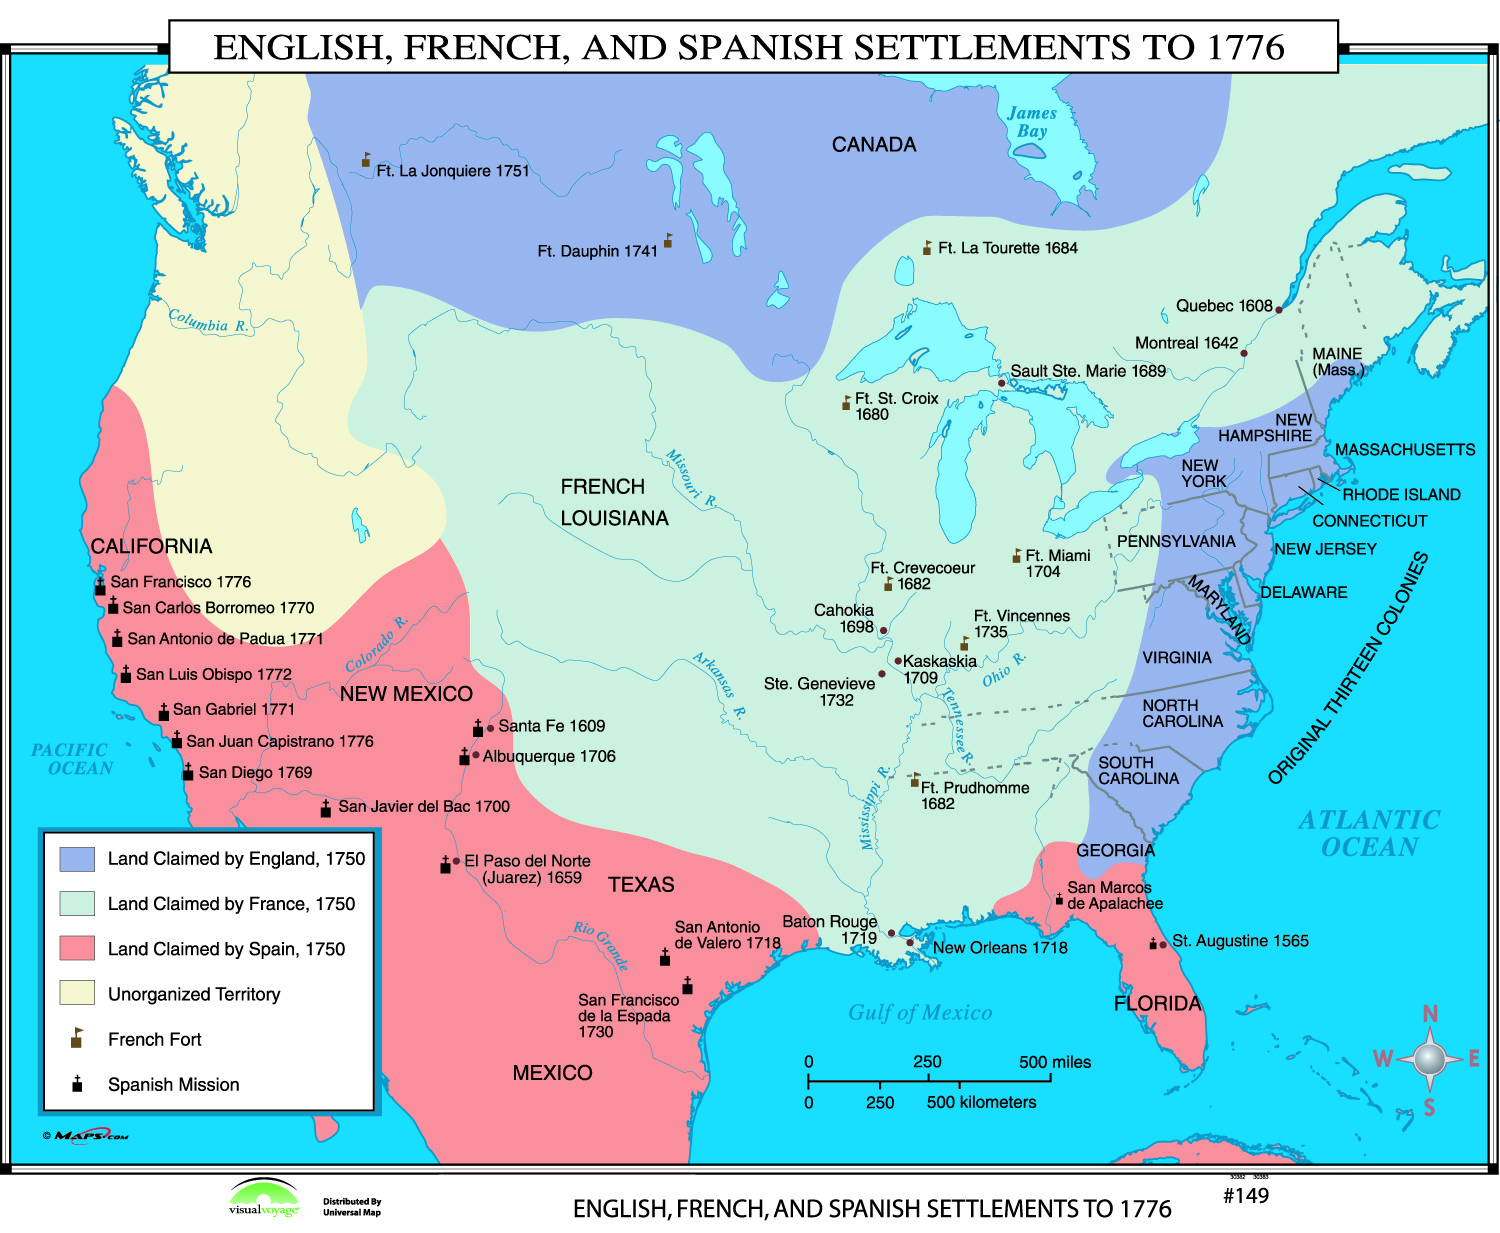 spanish english and french settlements French settlements spoke french and ate french food spanish settlements spoke spanish and ate spanish food.